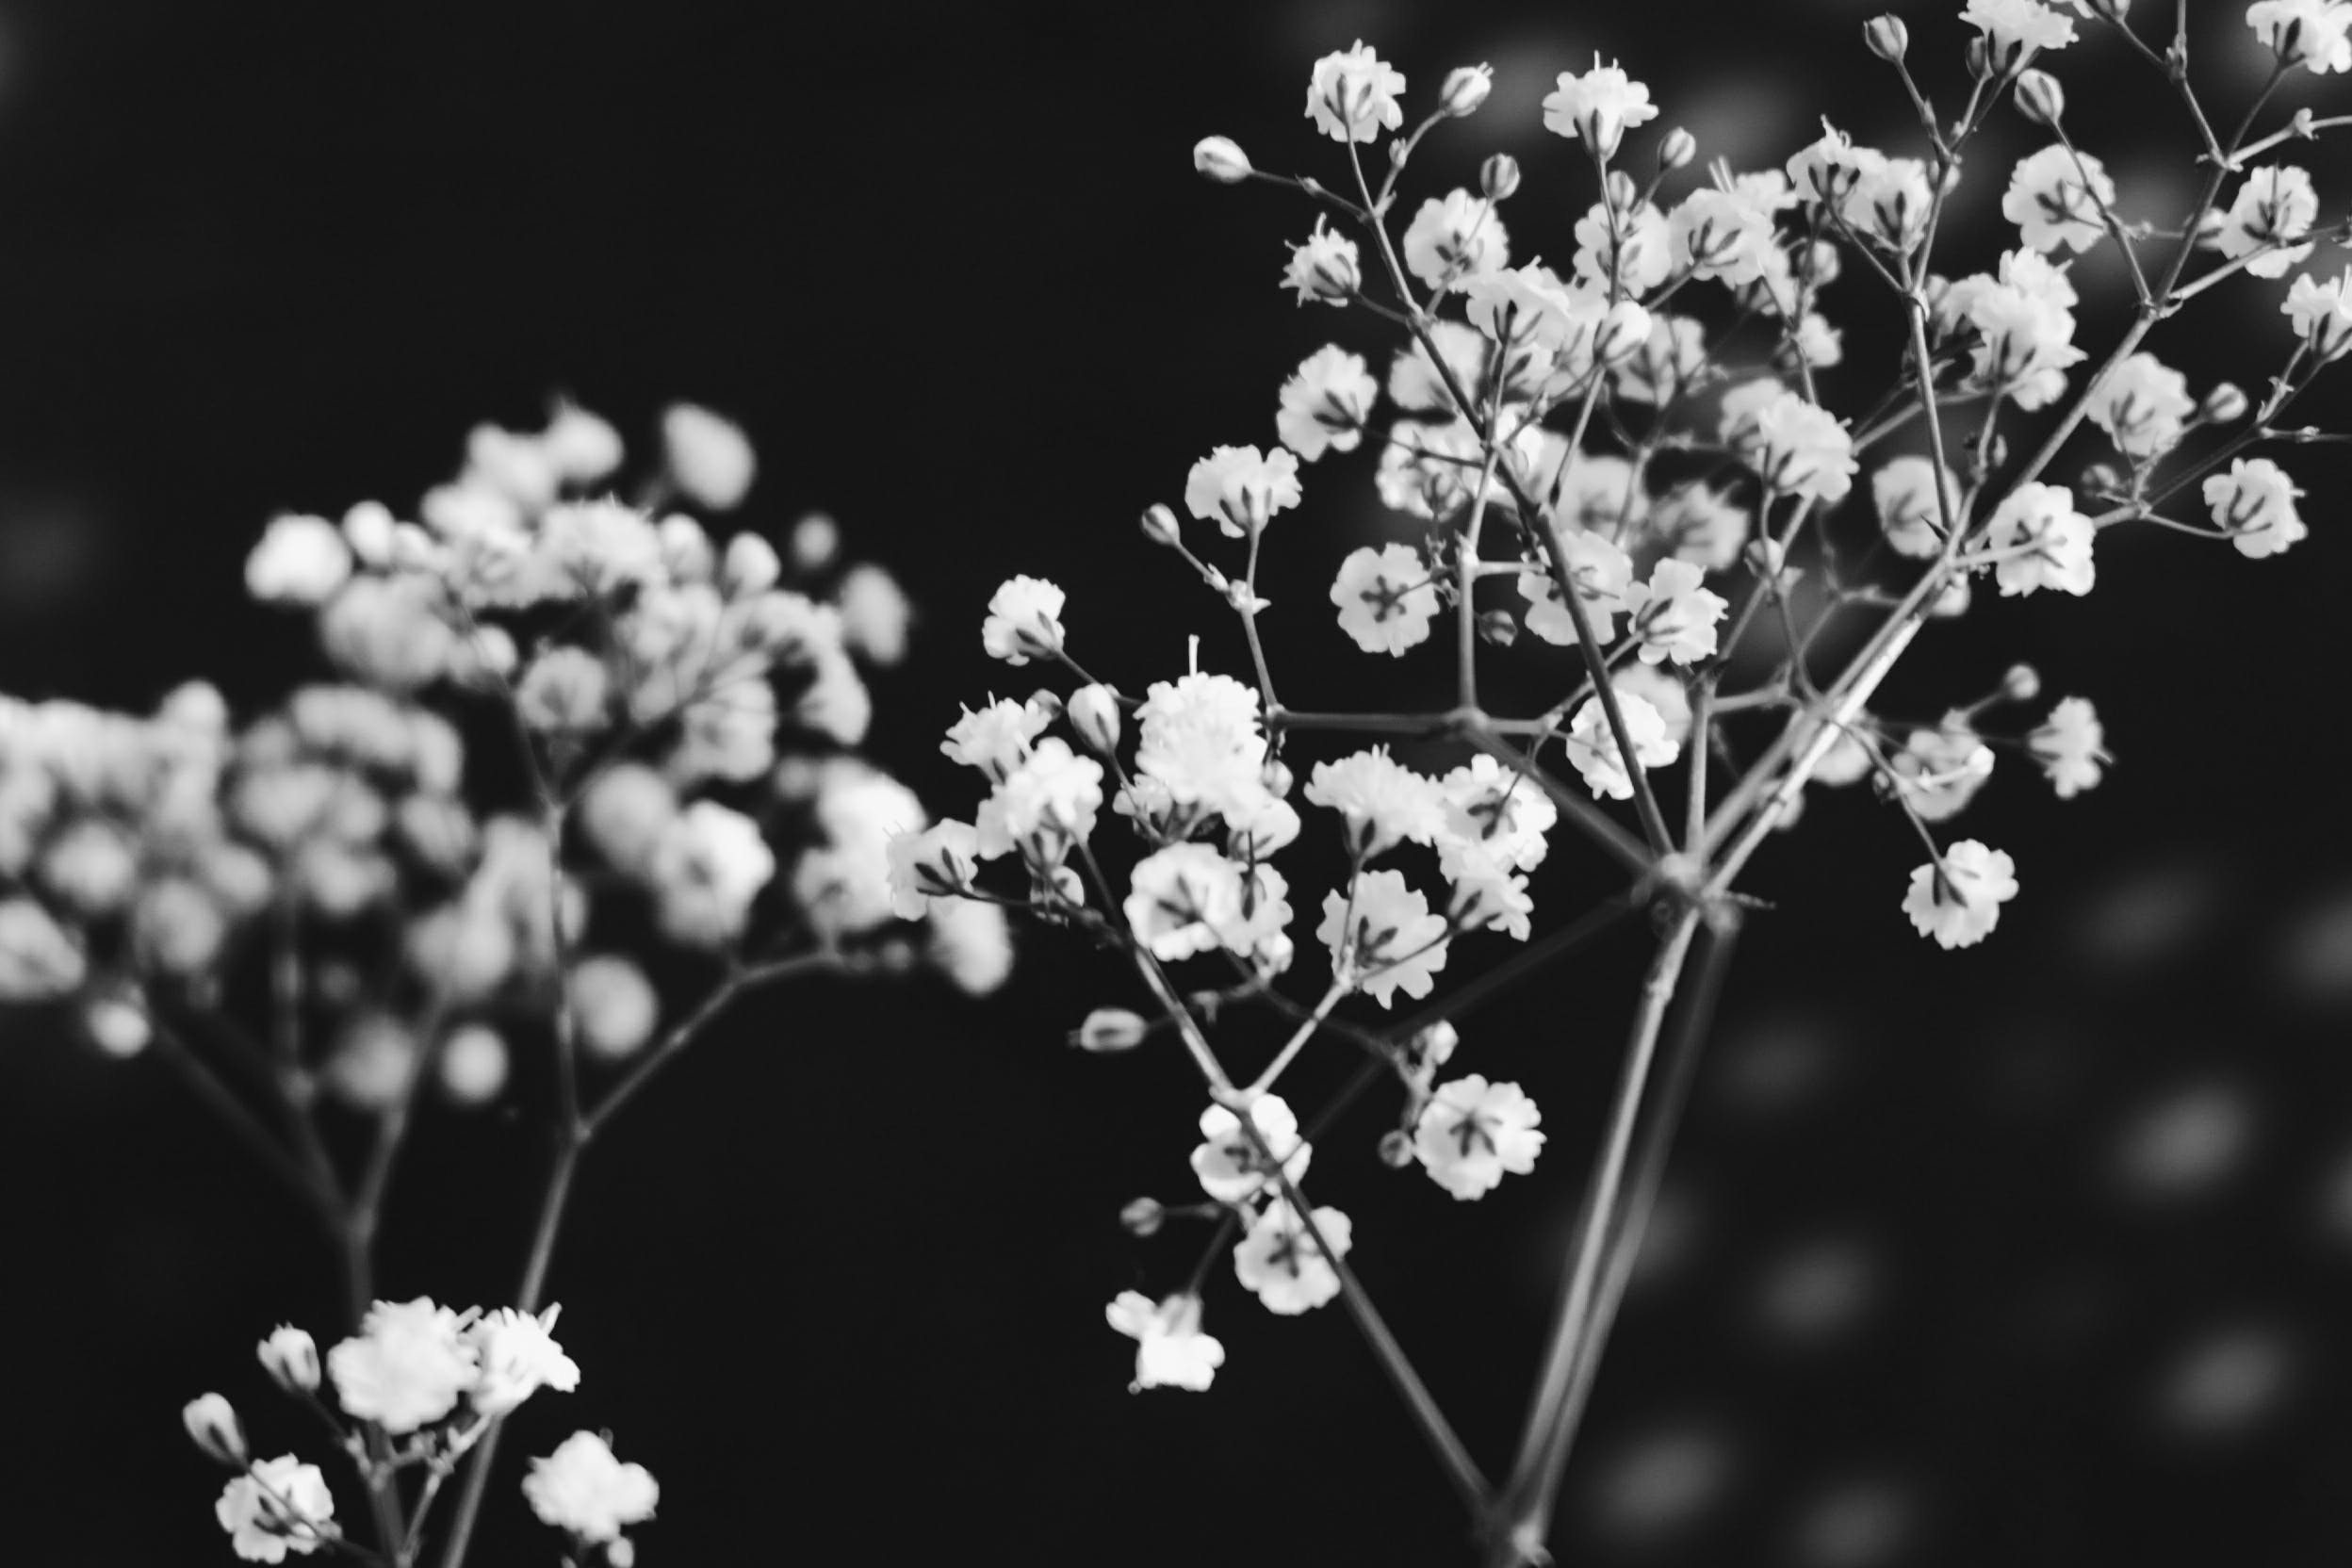 Free stock photo of black-and-white, flowers, branch